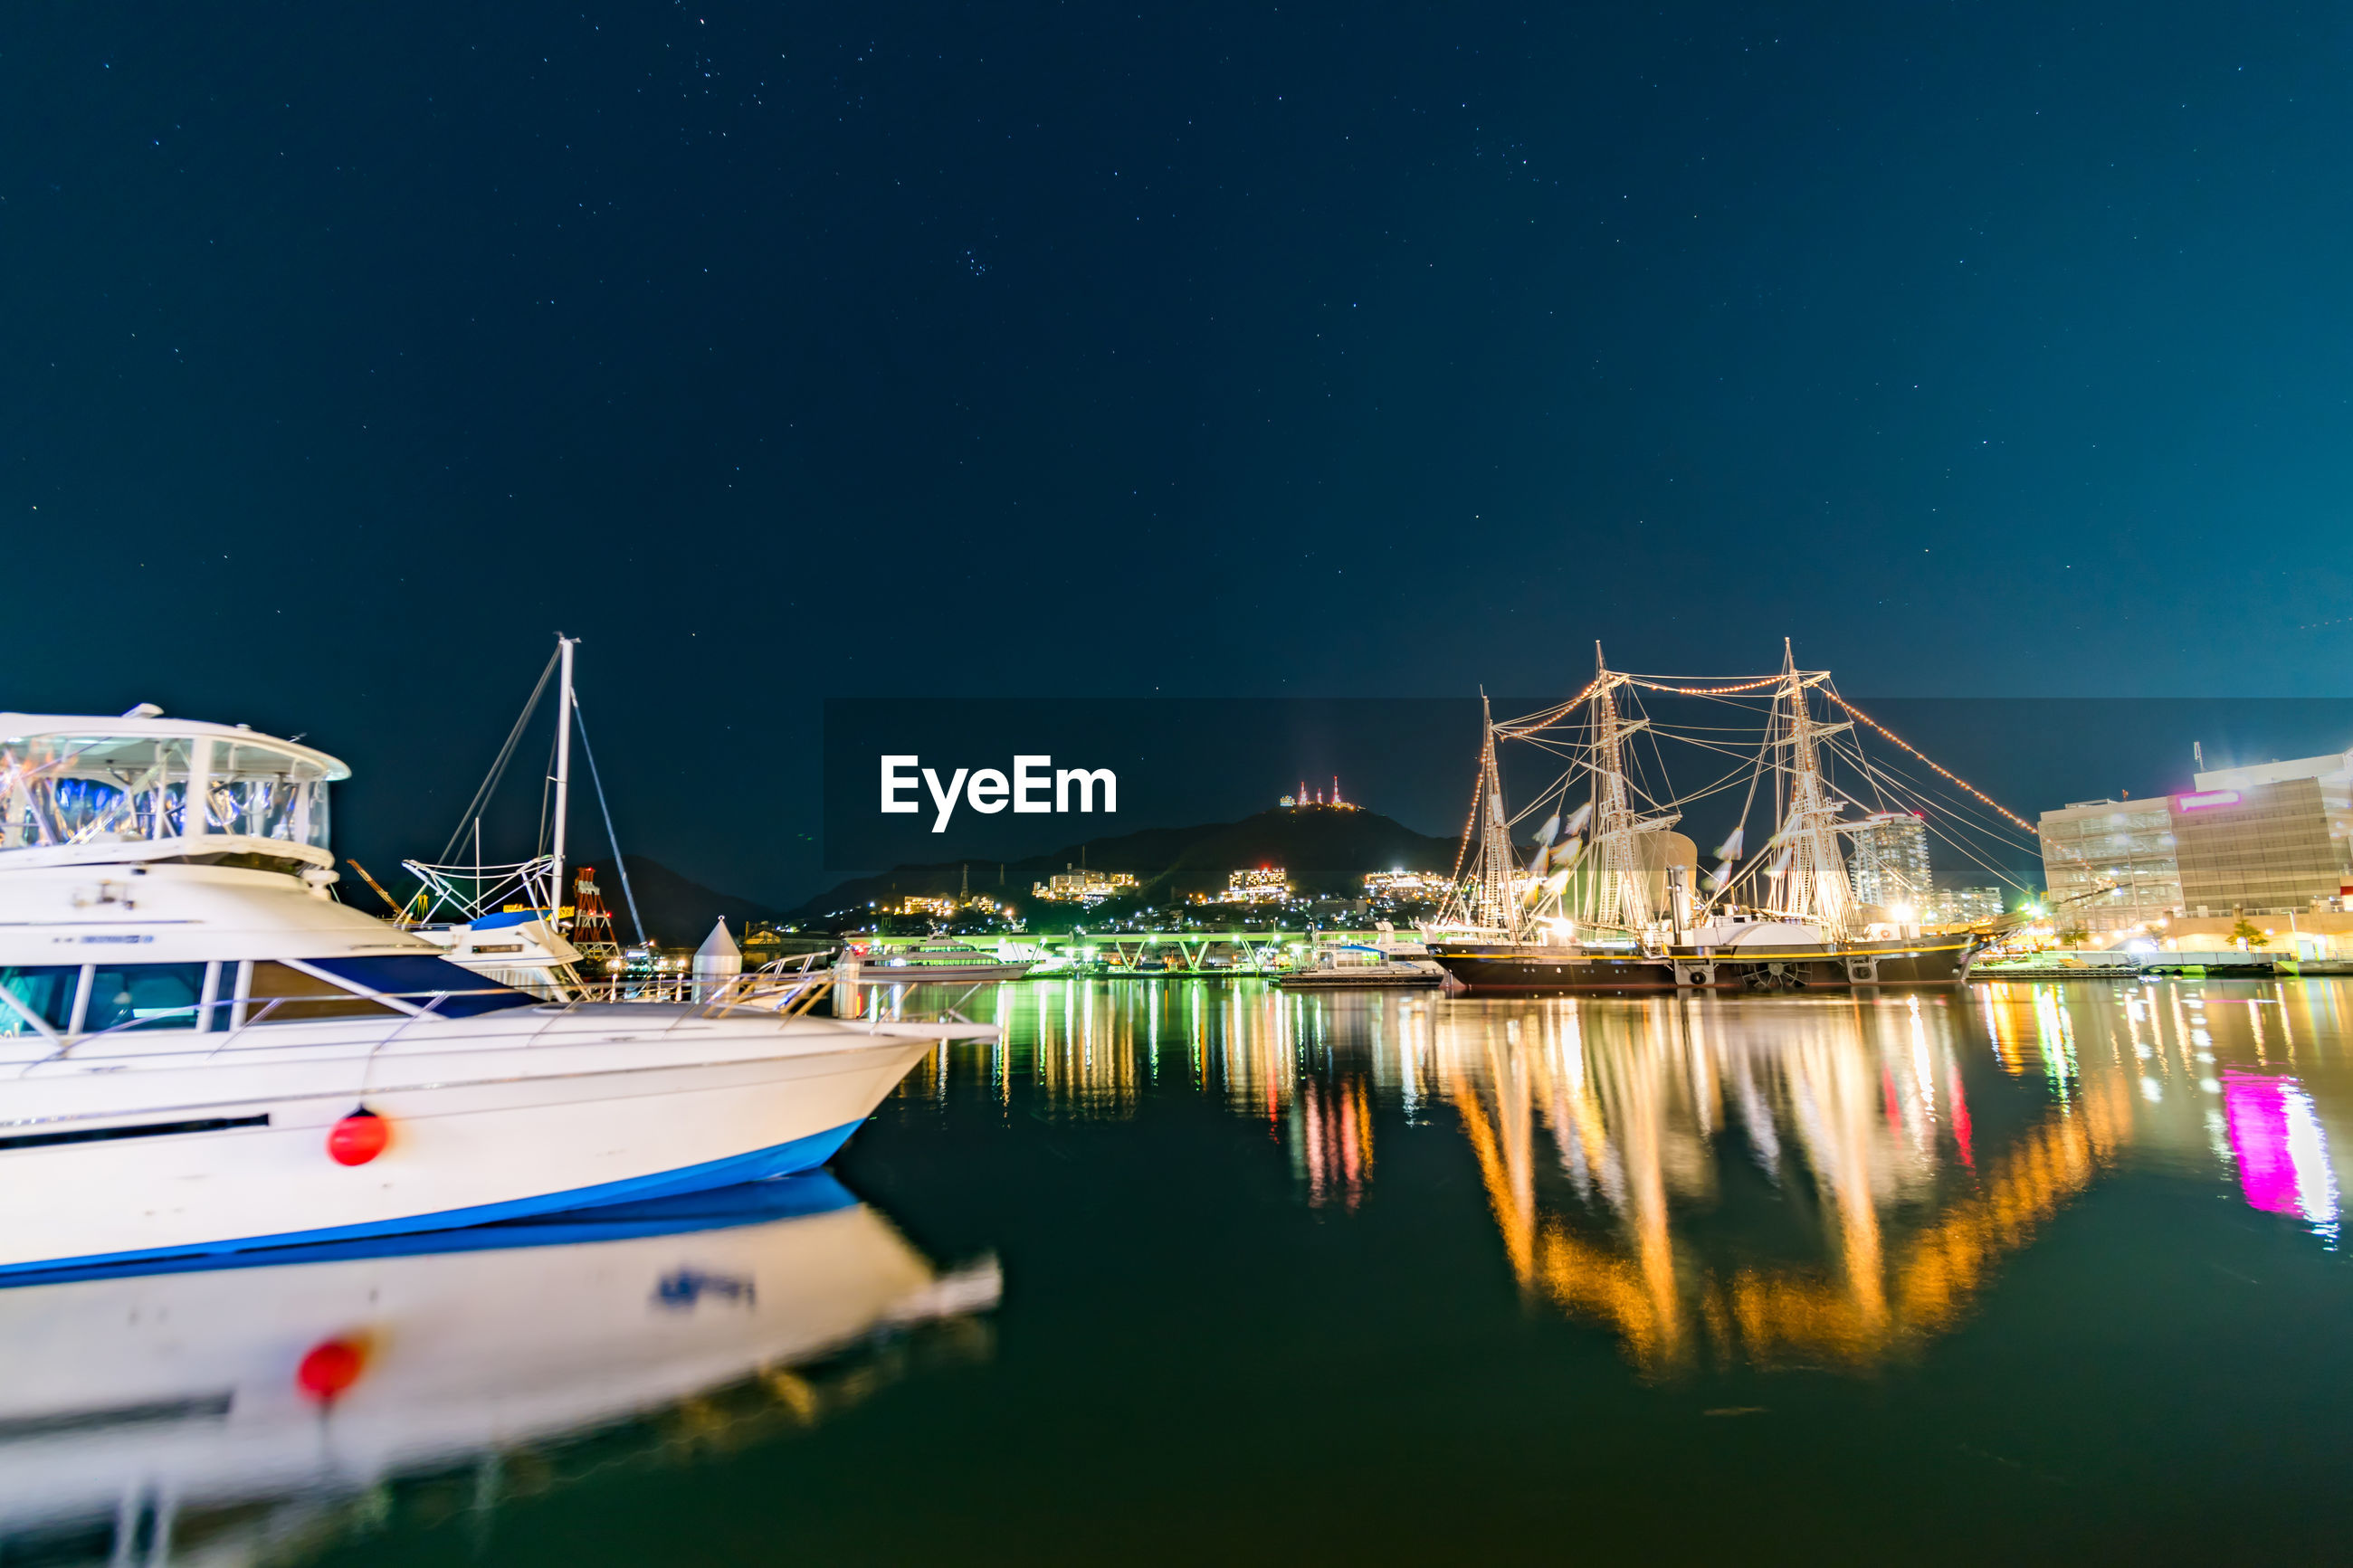 BOATS MOORED ON RIVER AGAINST ILLUMINATED SKY